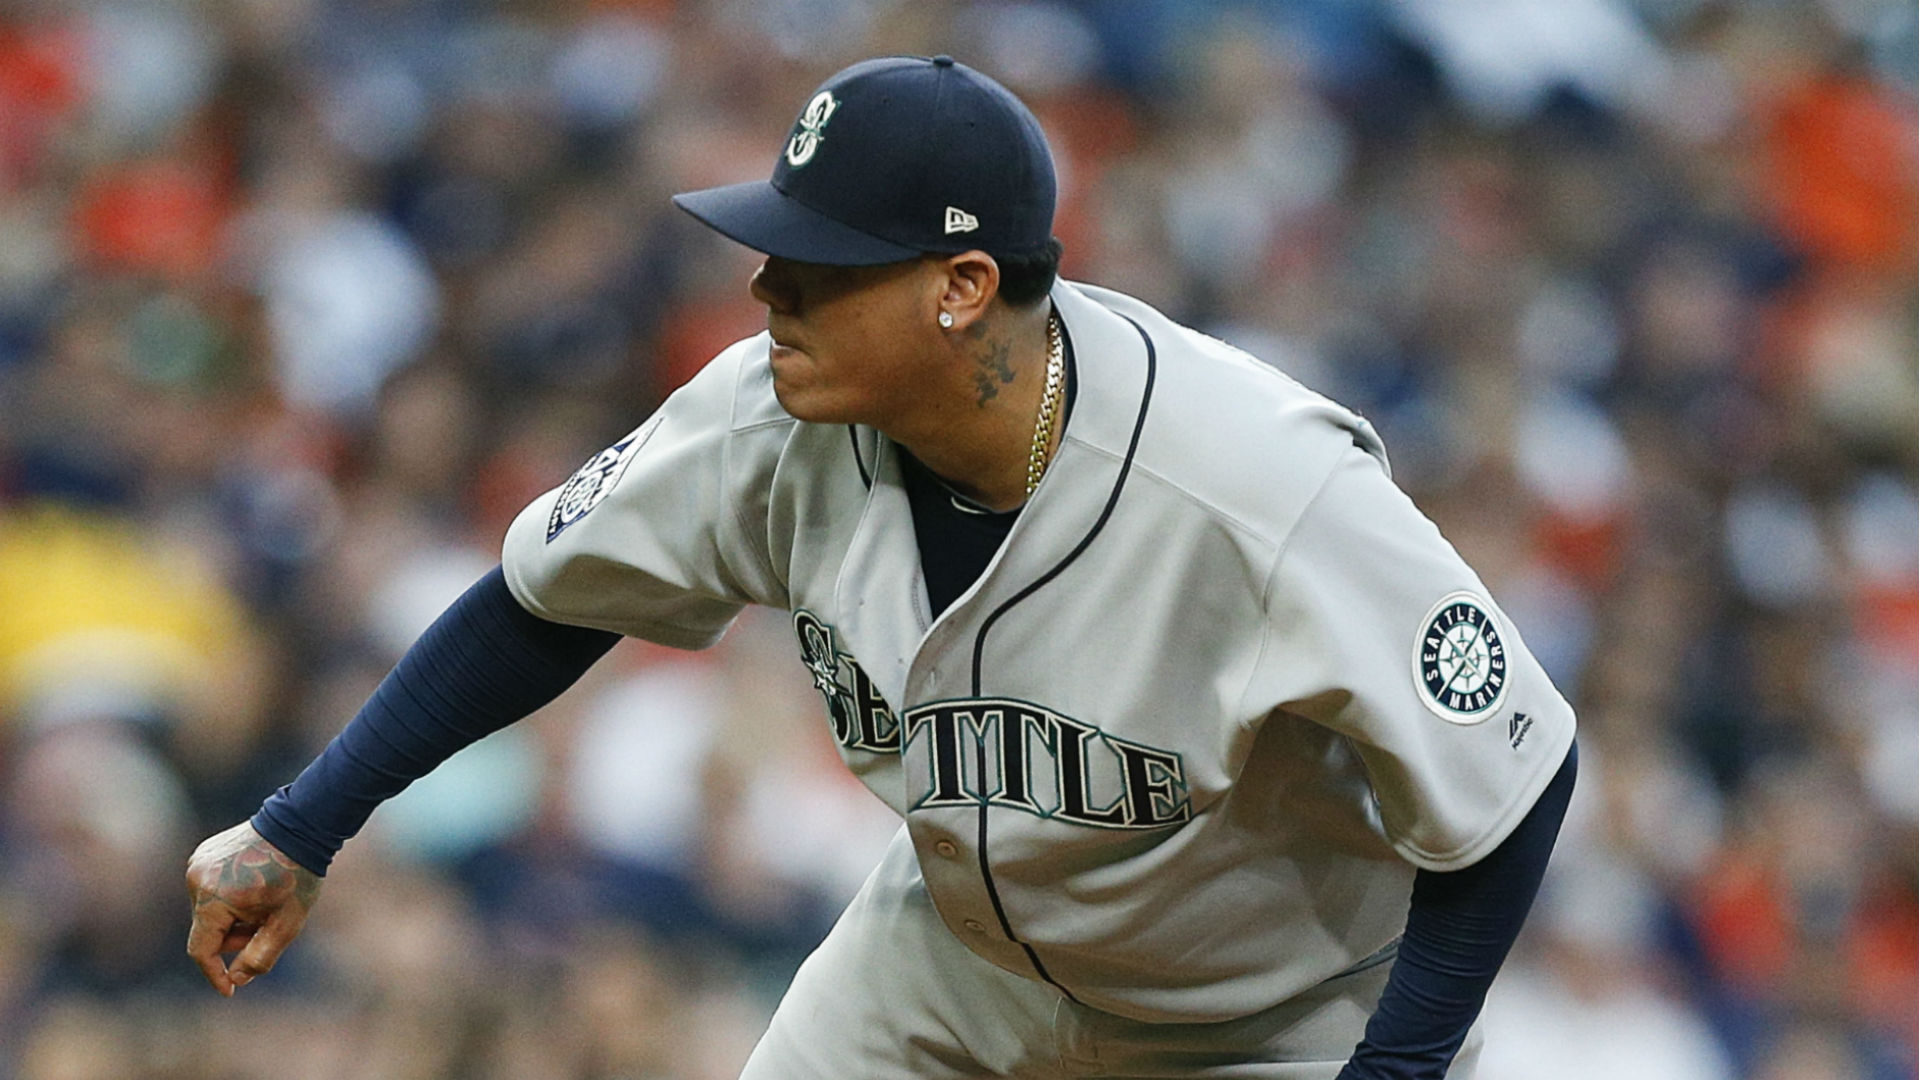 felix-hernandez-040317-getty-ftr-us.jpg